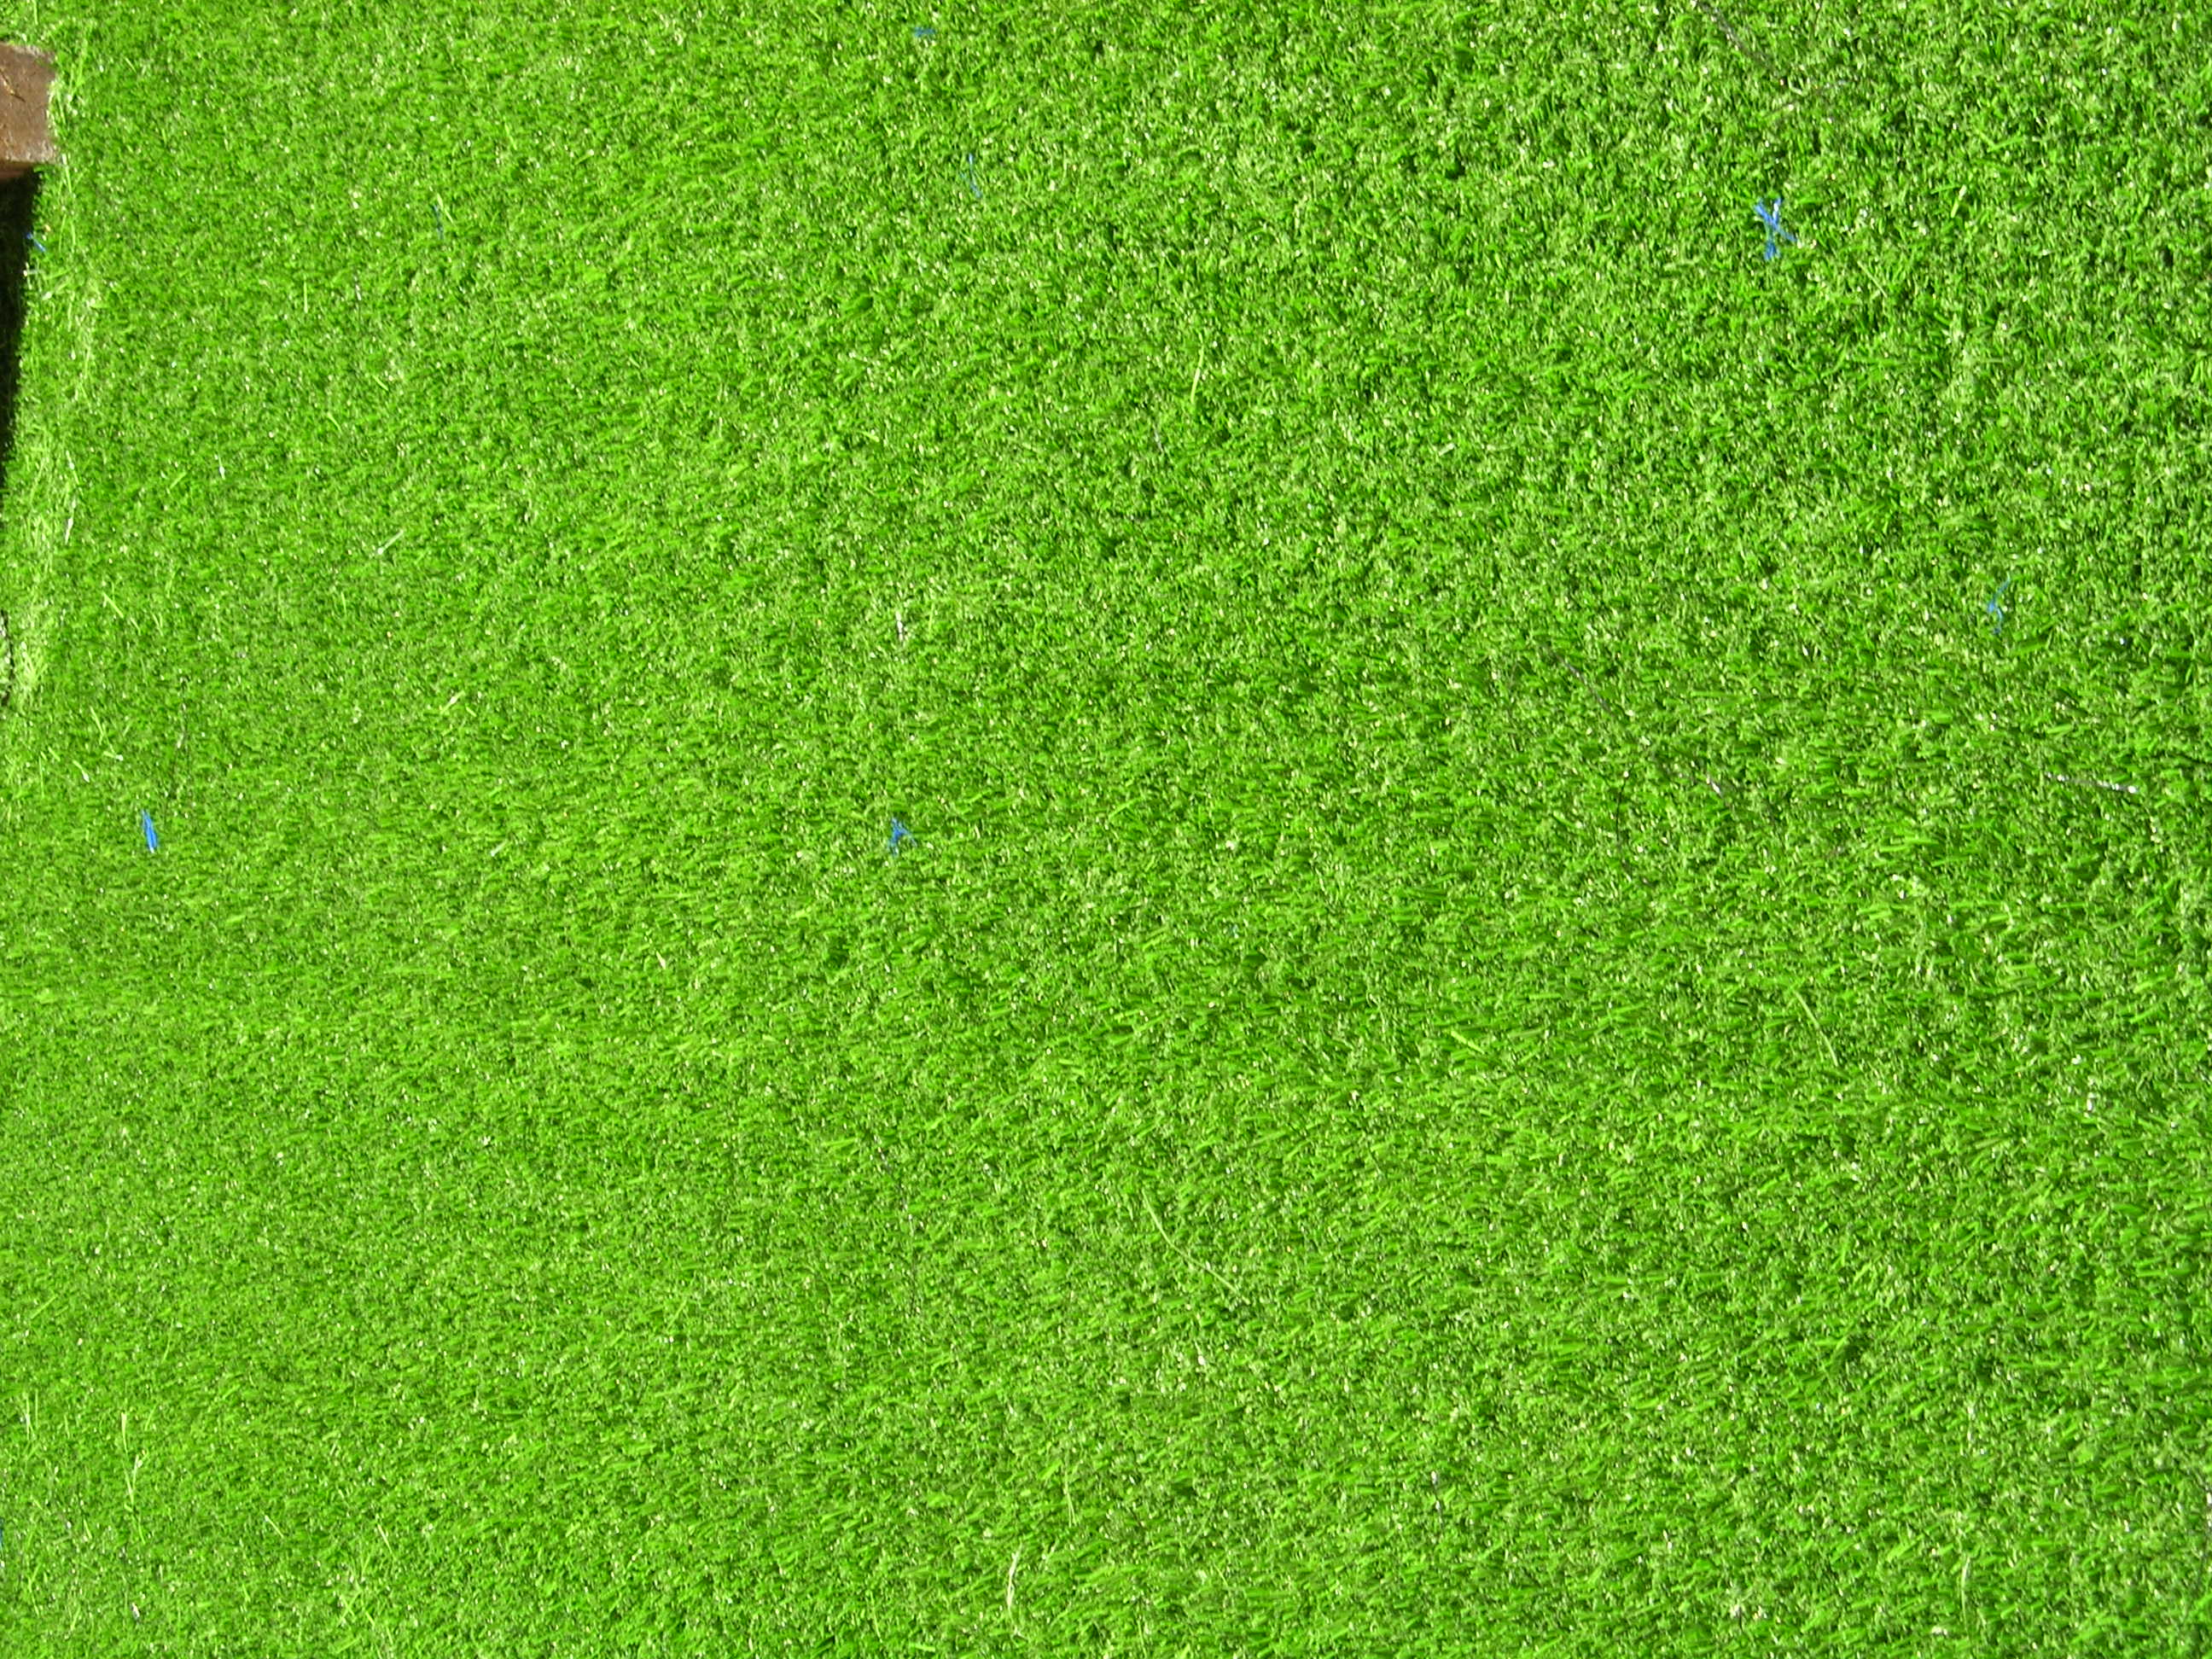 Golf grass top view